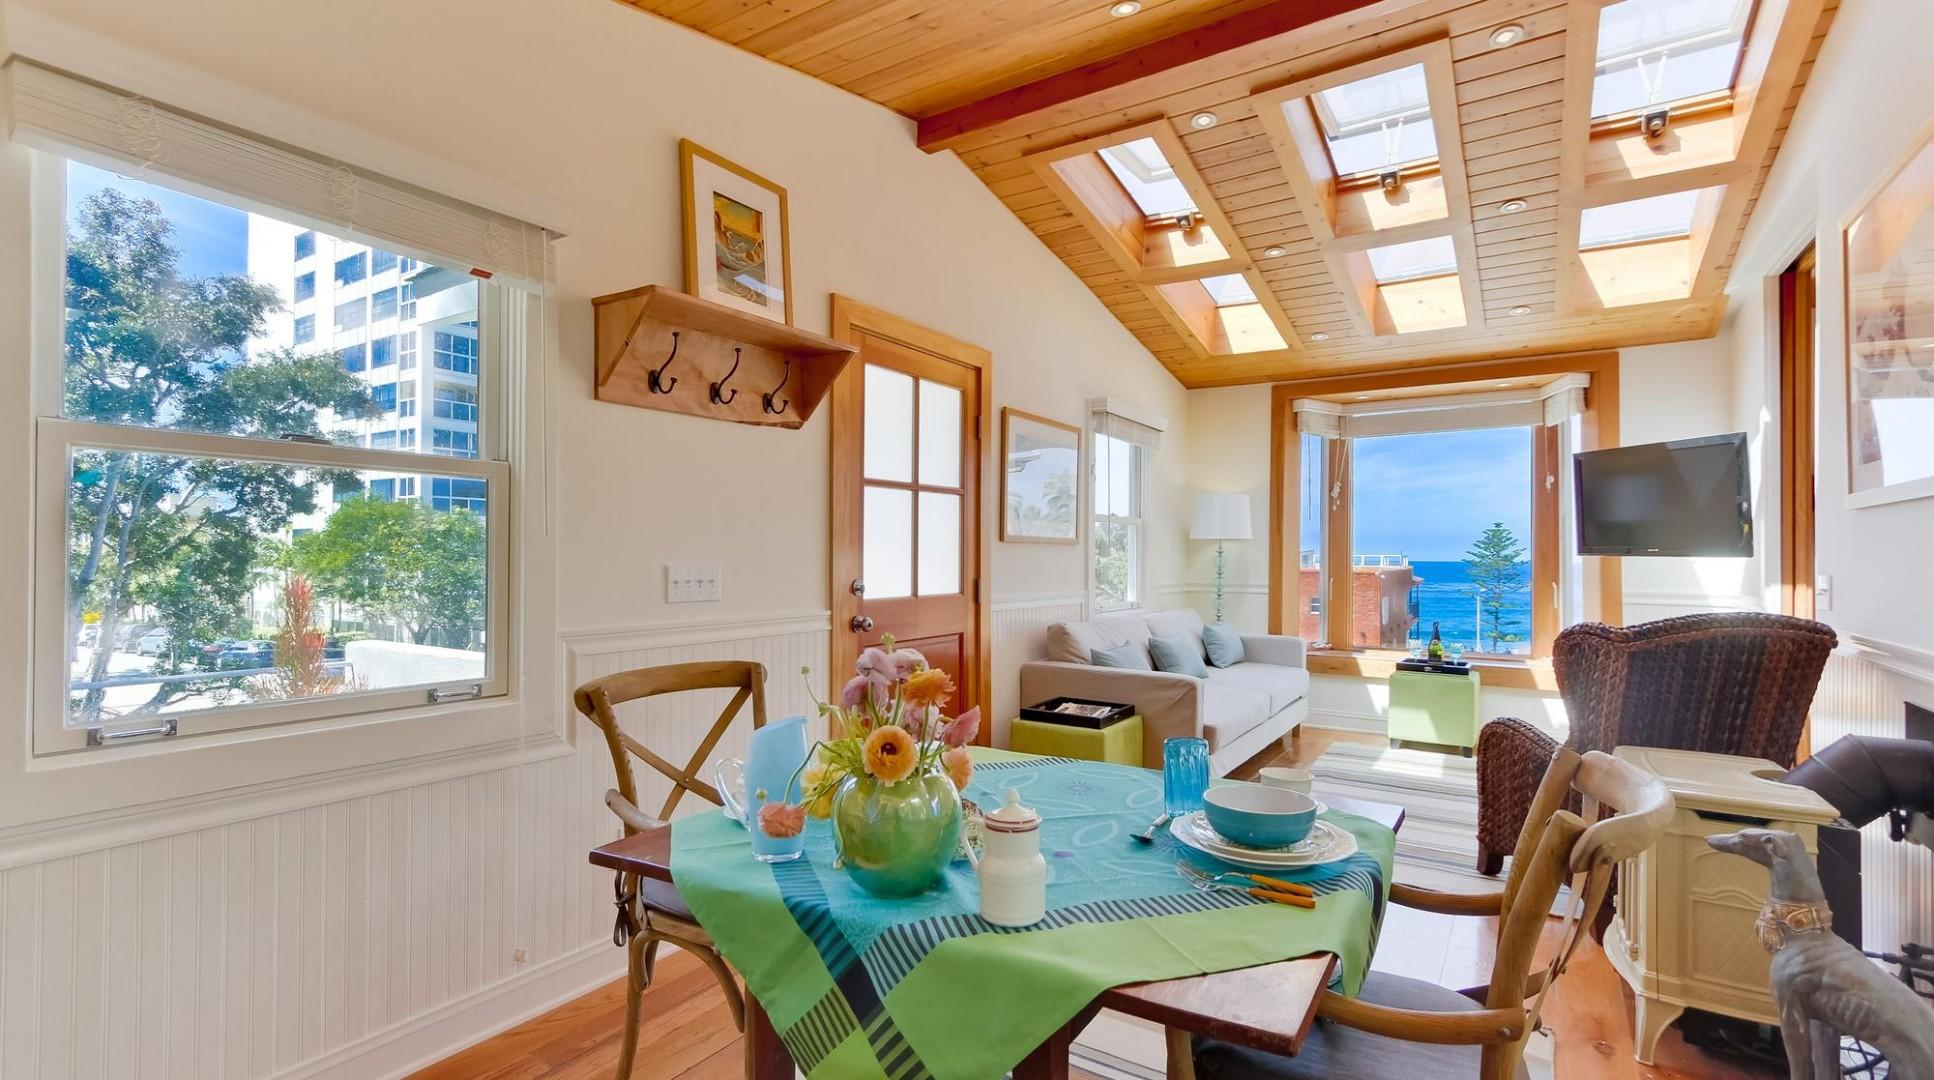 Dining for up to 4 with ocean view